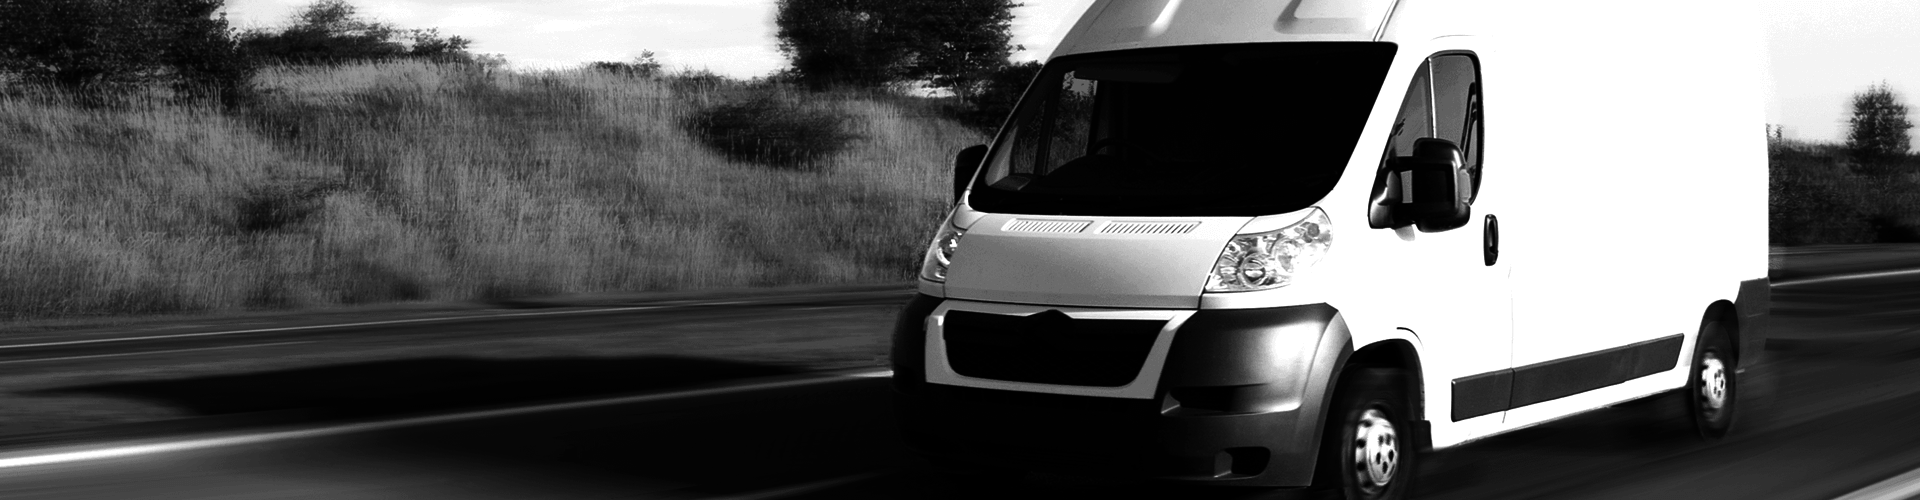 Choosing a Commercial Vehicle